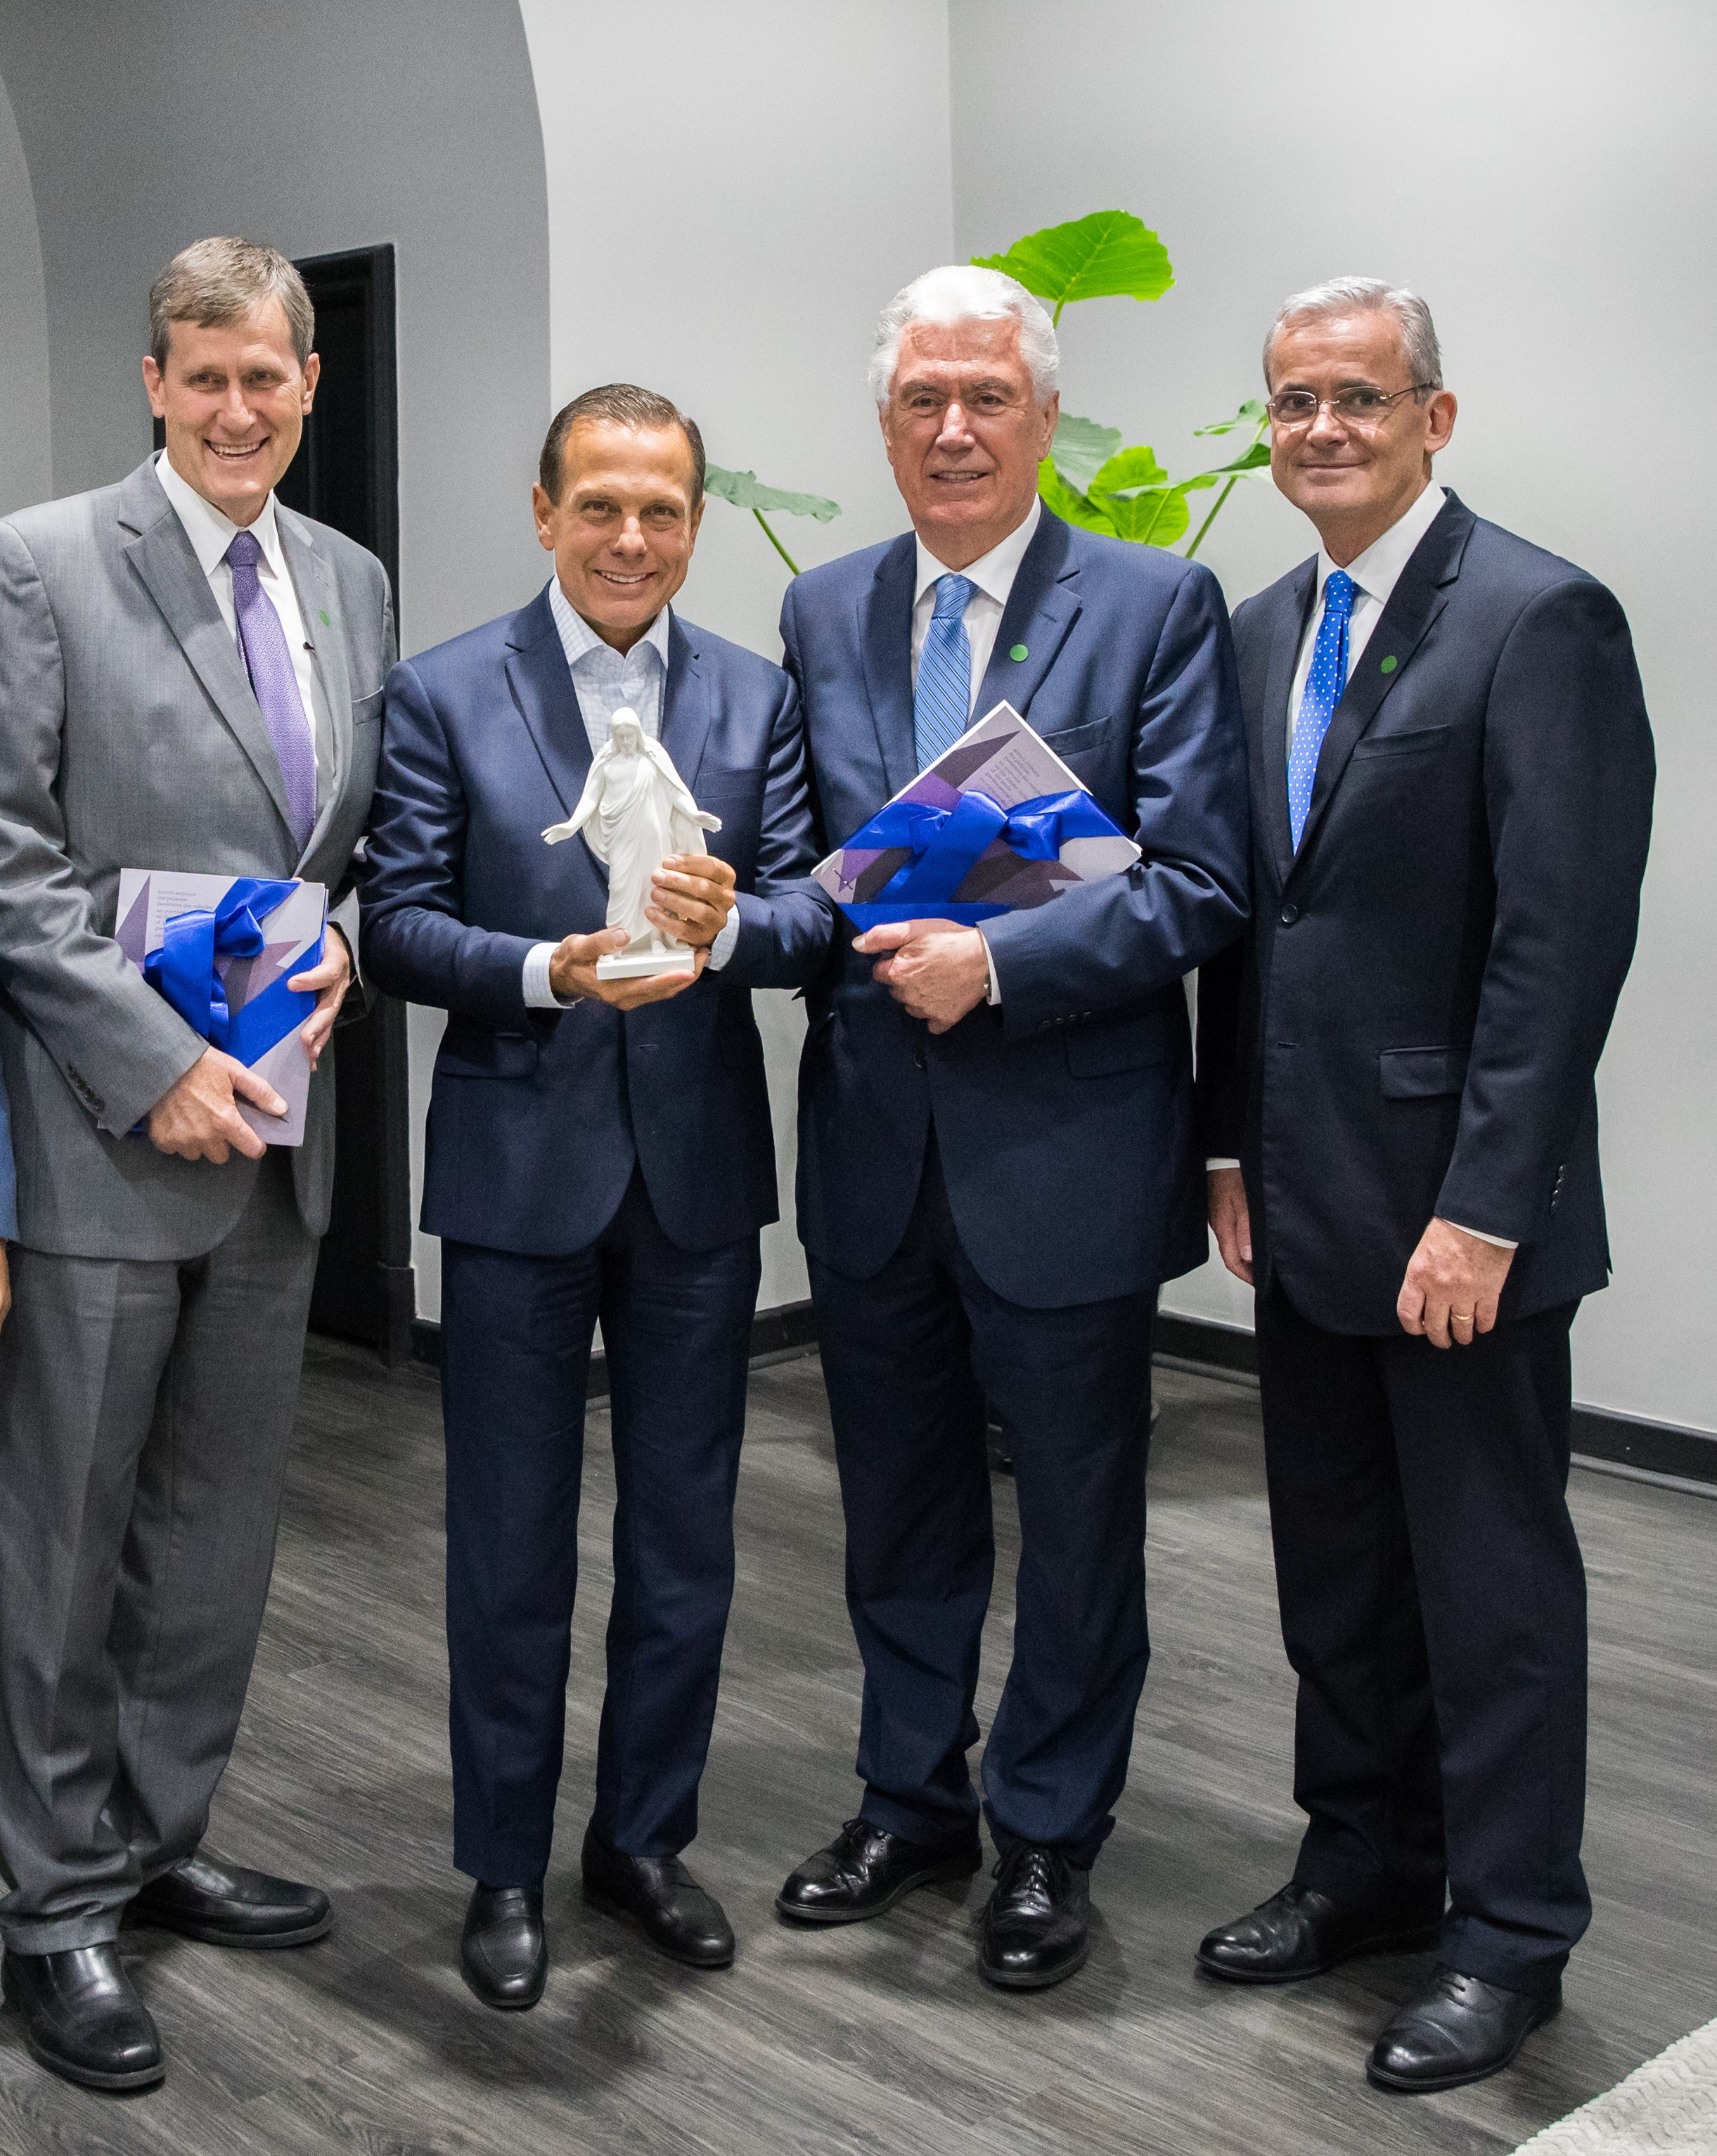 João Doria, second from left, the governor of the Brazilian state of Sao Paulo, is joined by, Elder Dieter F. Uchtdorf of the Quorum of the Twelve Apostles, second from right; Elder Patrick Kearon of the Presidency of the Seventy, right; and Elder Marcos A. Aidukaitis, left, a General Authority Seventy and president of the Brazil Area. They met Feb. 19, 2019, at the Palacio dos Bandeirantes in Sao Paulo, Brazil.